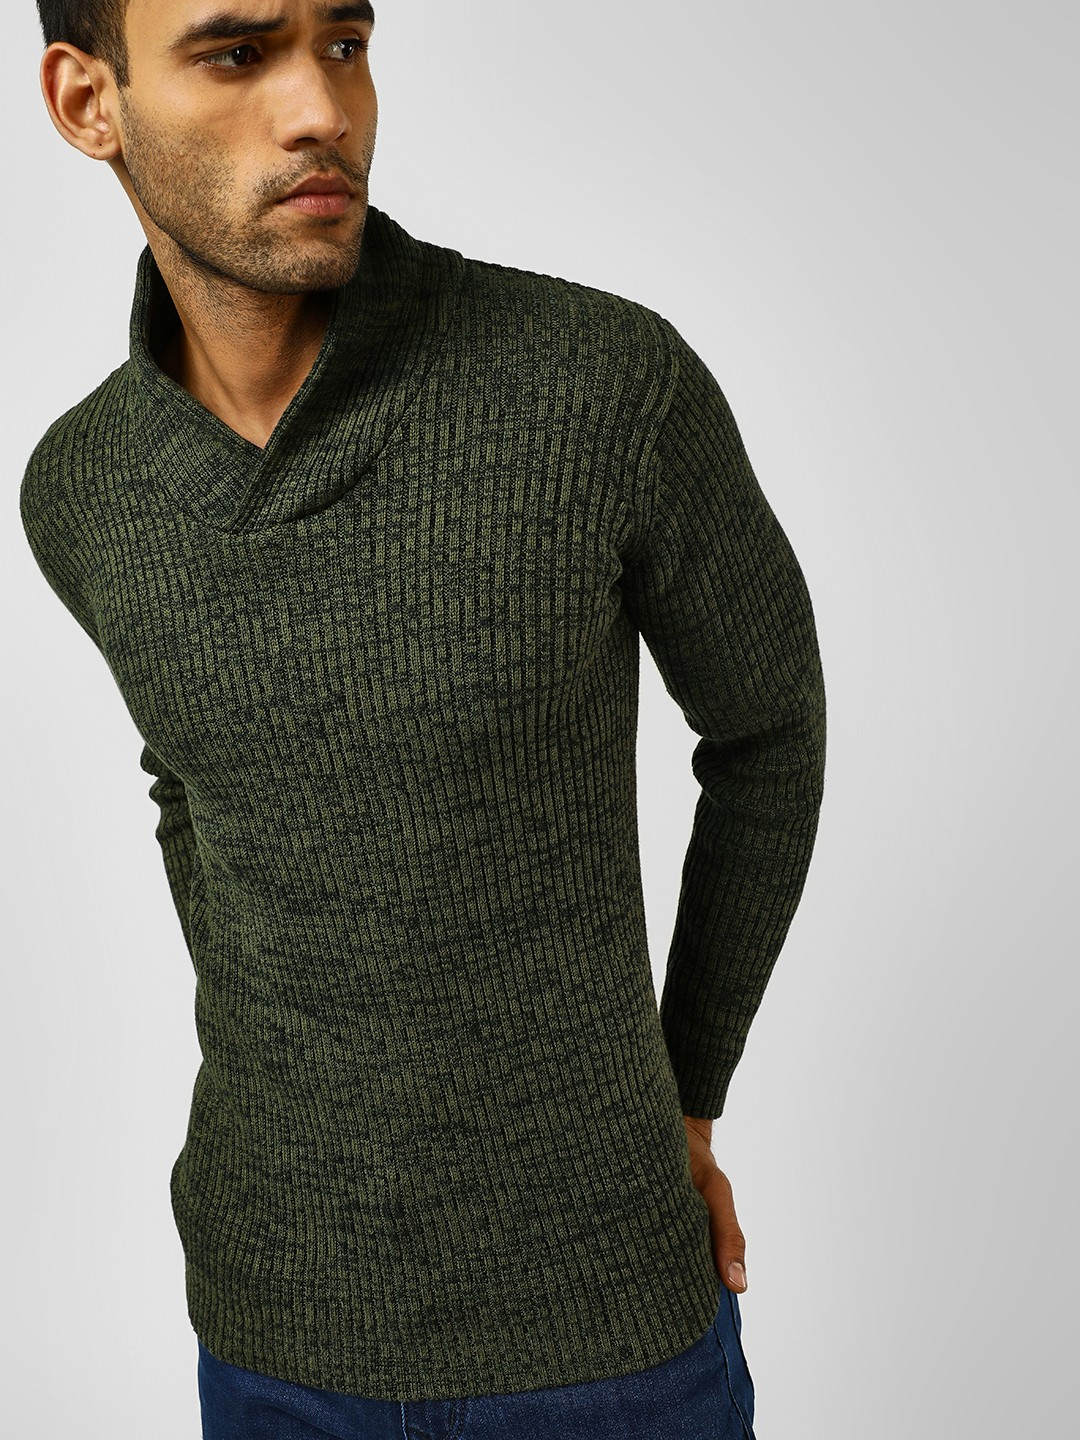 Brave Soul Green Twisted Shawl Collar Ribbed Jumper 1